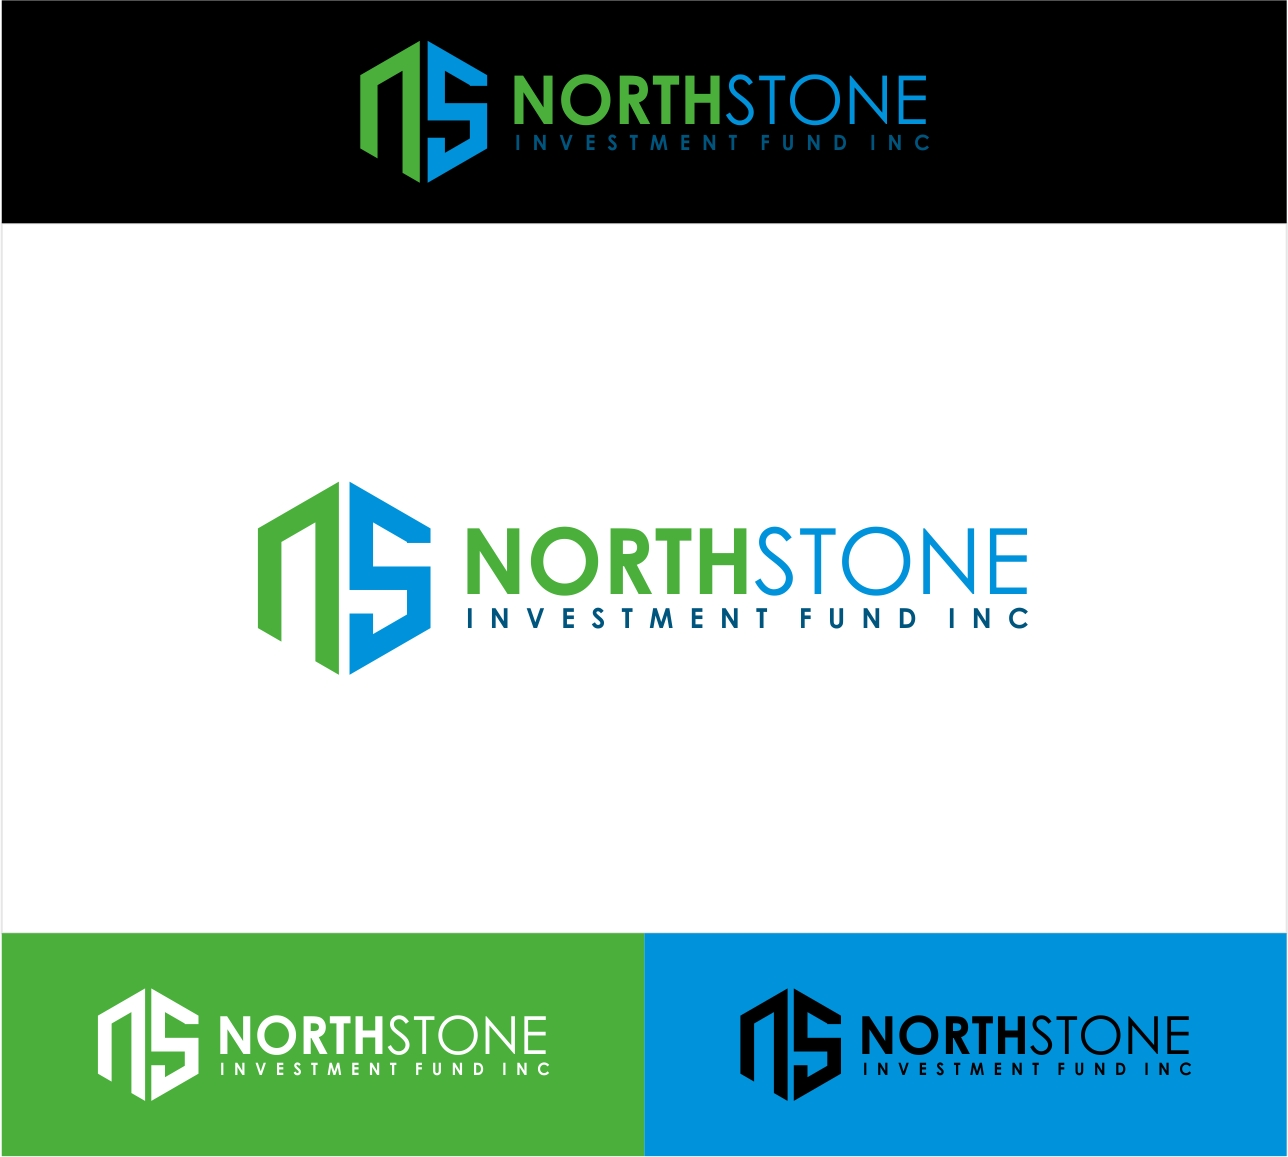 Logo Design by haidu - Entry No. 197 in the Logo Design Contest Unique Logo Design Wanted for NorthStone Investment Fund Inc.